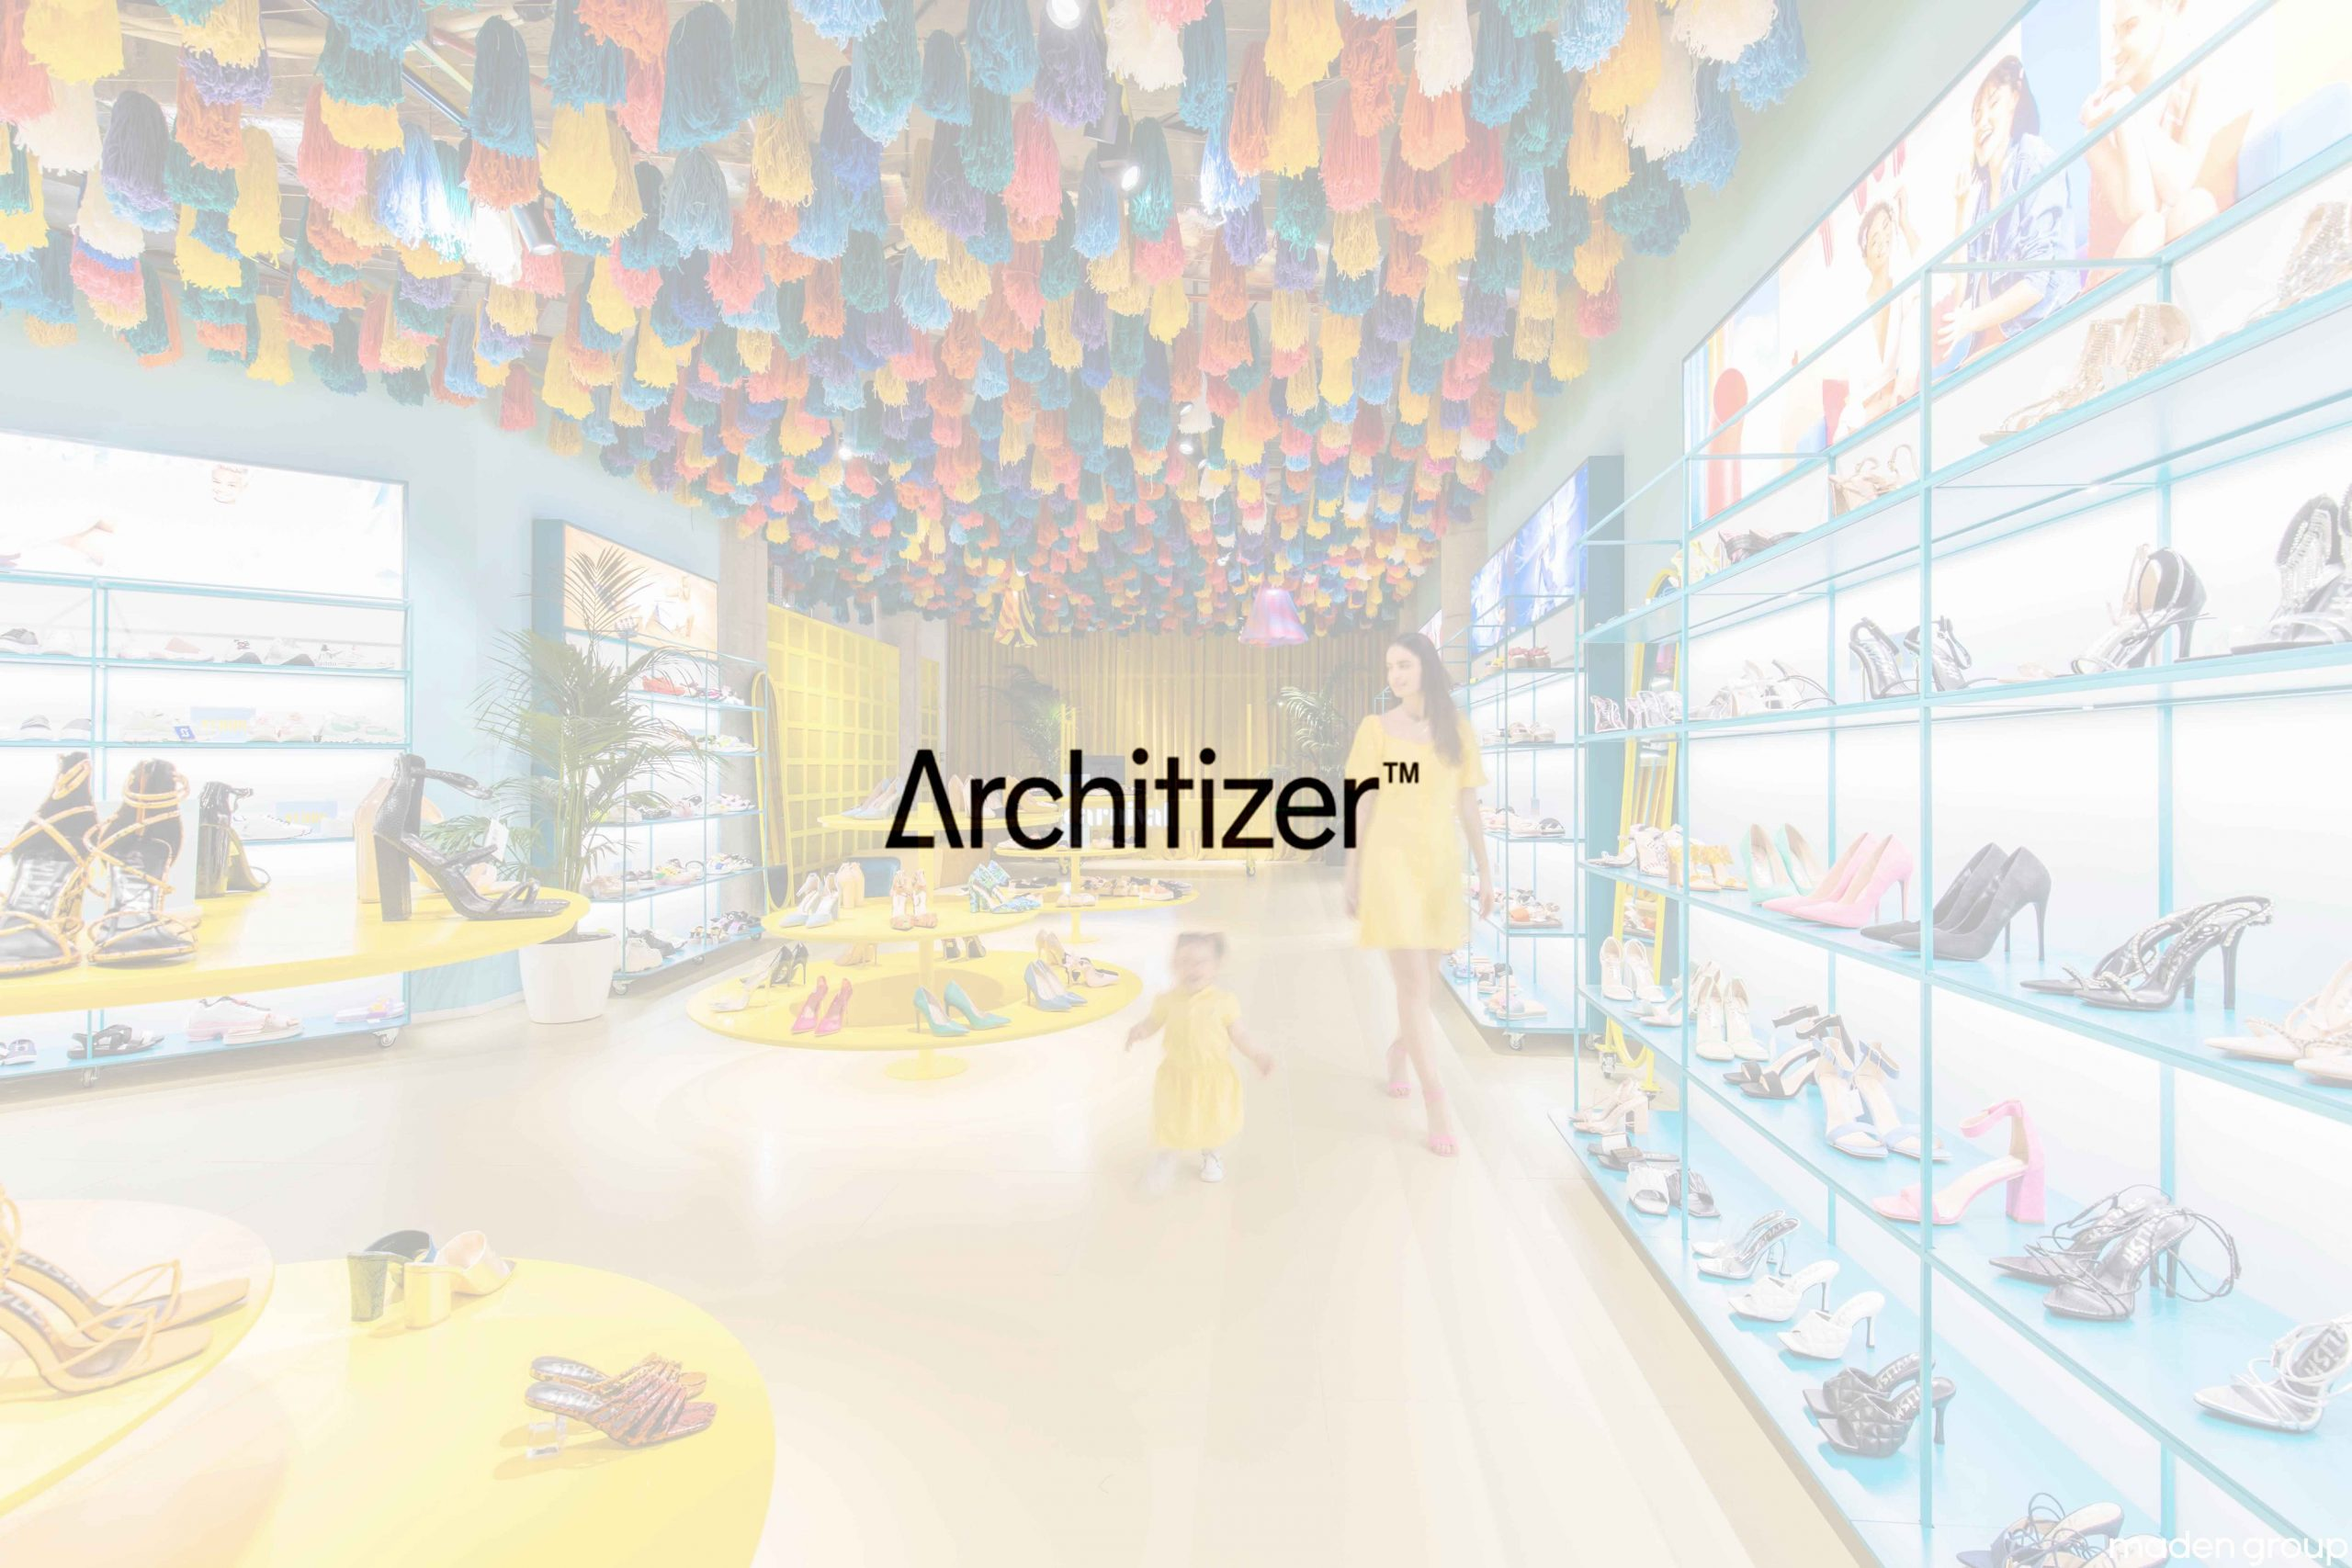 CARNIVAL Featured on Architizer